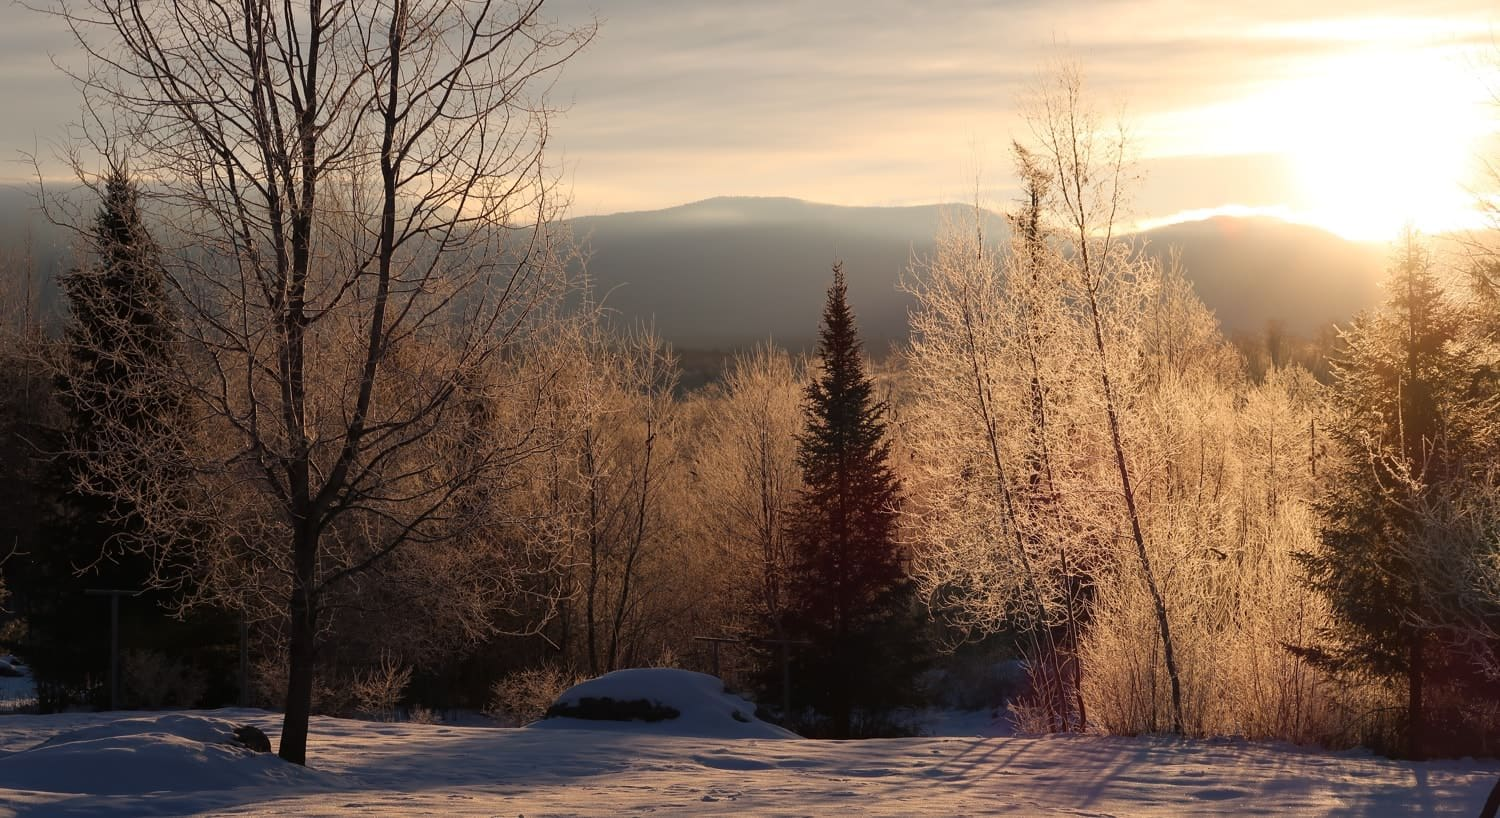 The sun setting behind the distant hills in the winter with bare trees, pine trees and snow-covered ground in the foreground